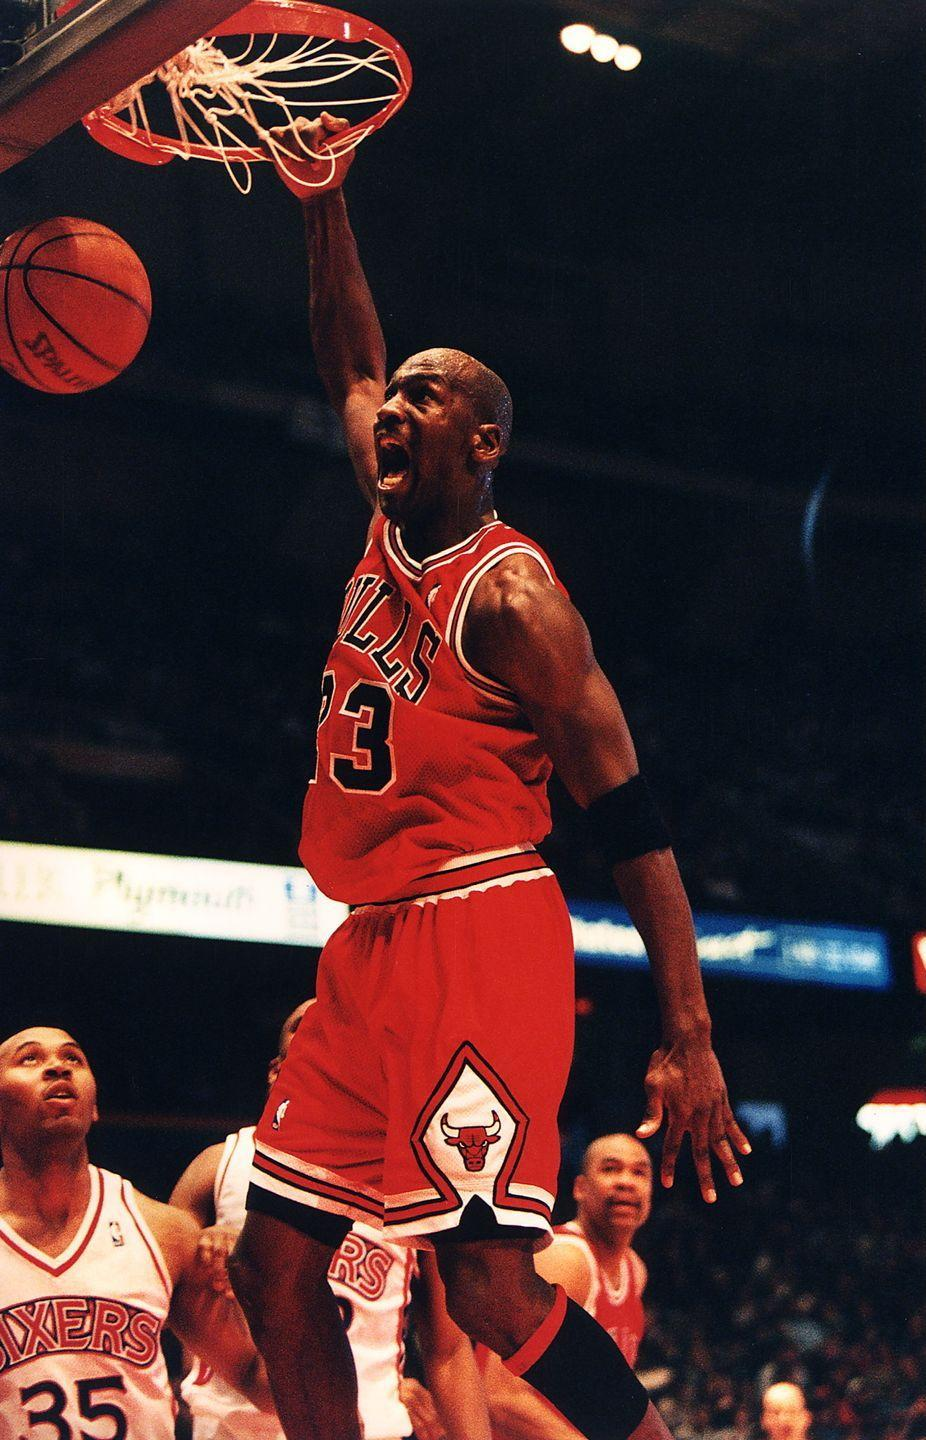 <p>Parents wanted their kids to be like Mike in 1995! After dabbling in minor league baseball, Michael Jordan returned to the NBA in 1995. In March of that same year the Bulls player faced off against the Indiana Pacers, scoring 19 points. The game had the highest Nielson rating of a regular season NBA game since 1975. The name-game runner-ups were Matthew and Christopher. Jessica, Ashley, and Emily were the top 3 girls' choices.</p>